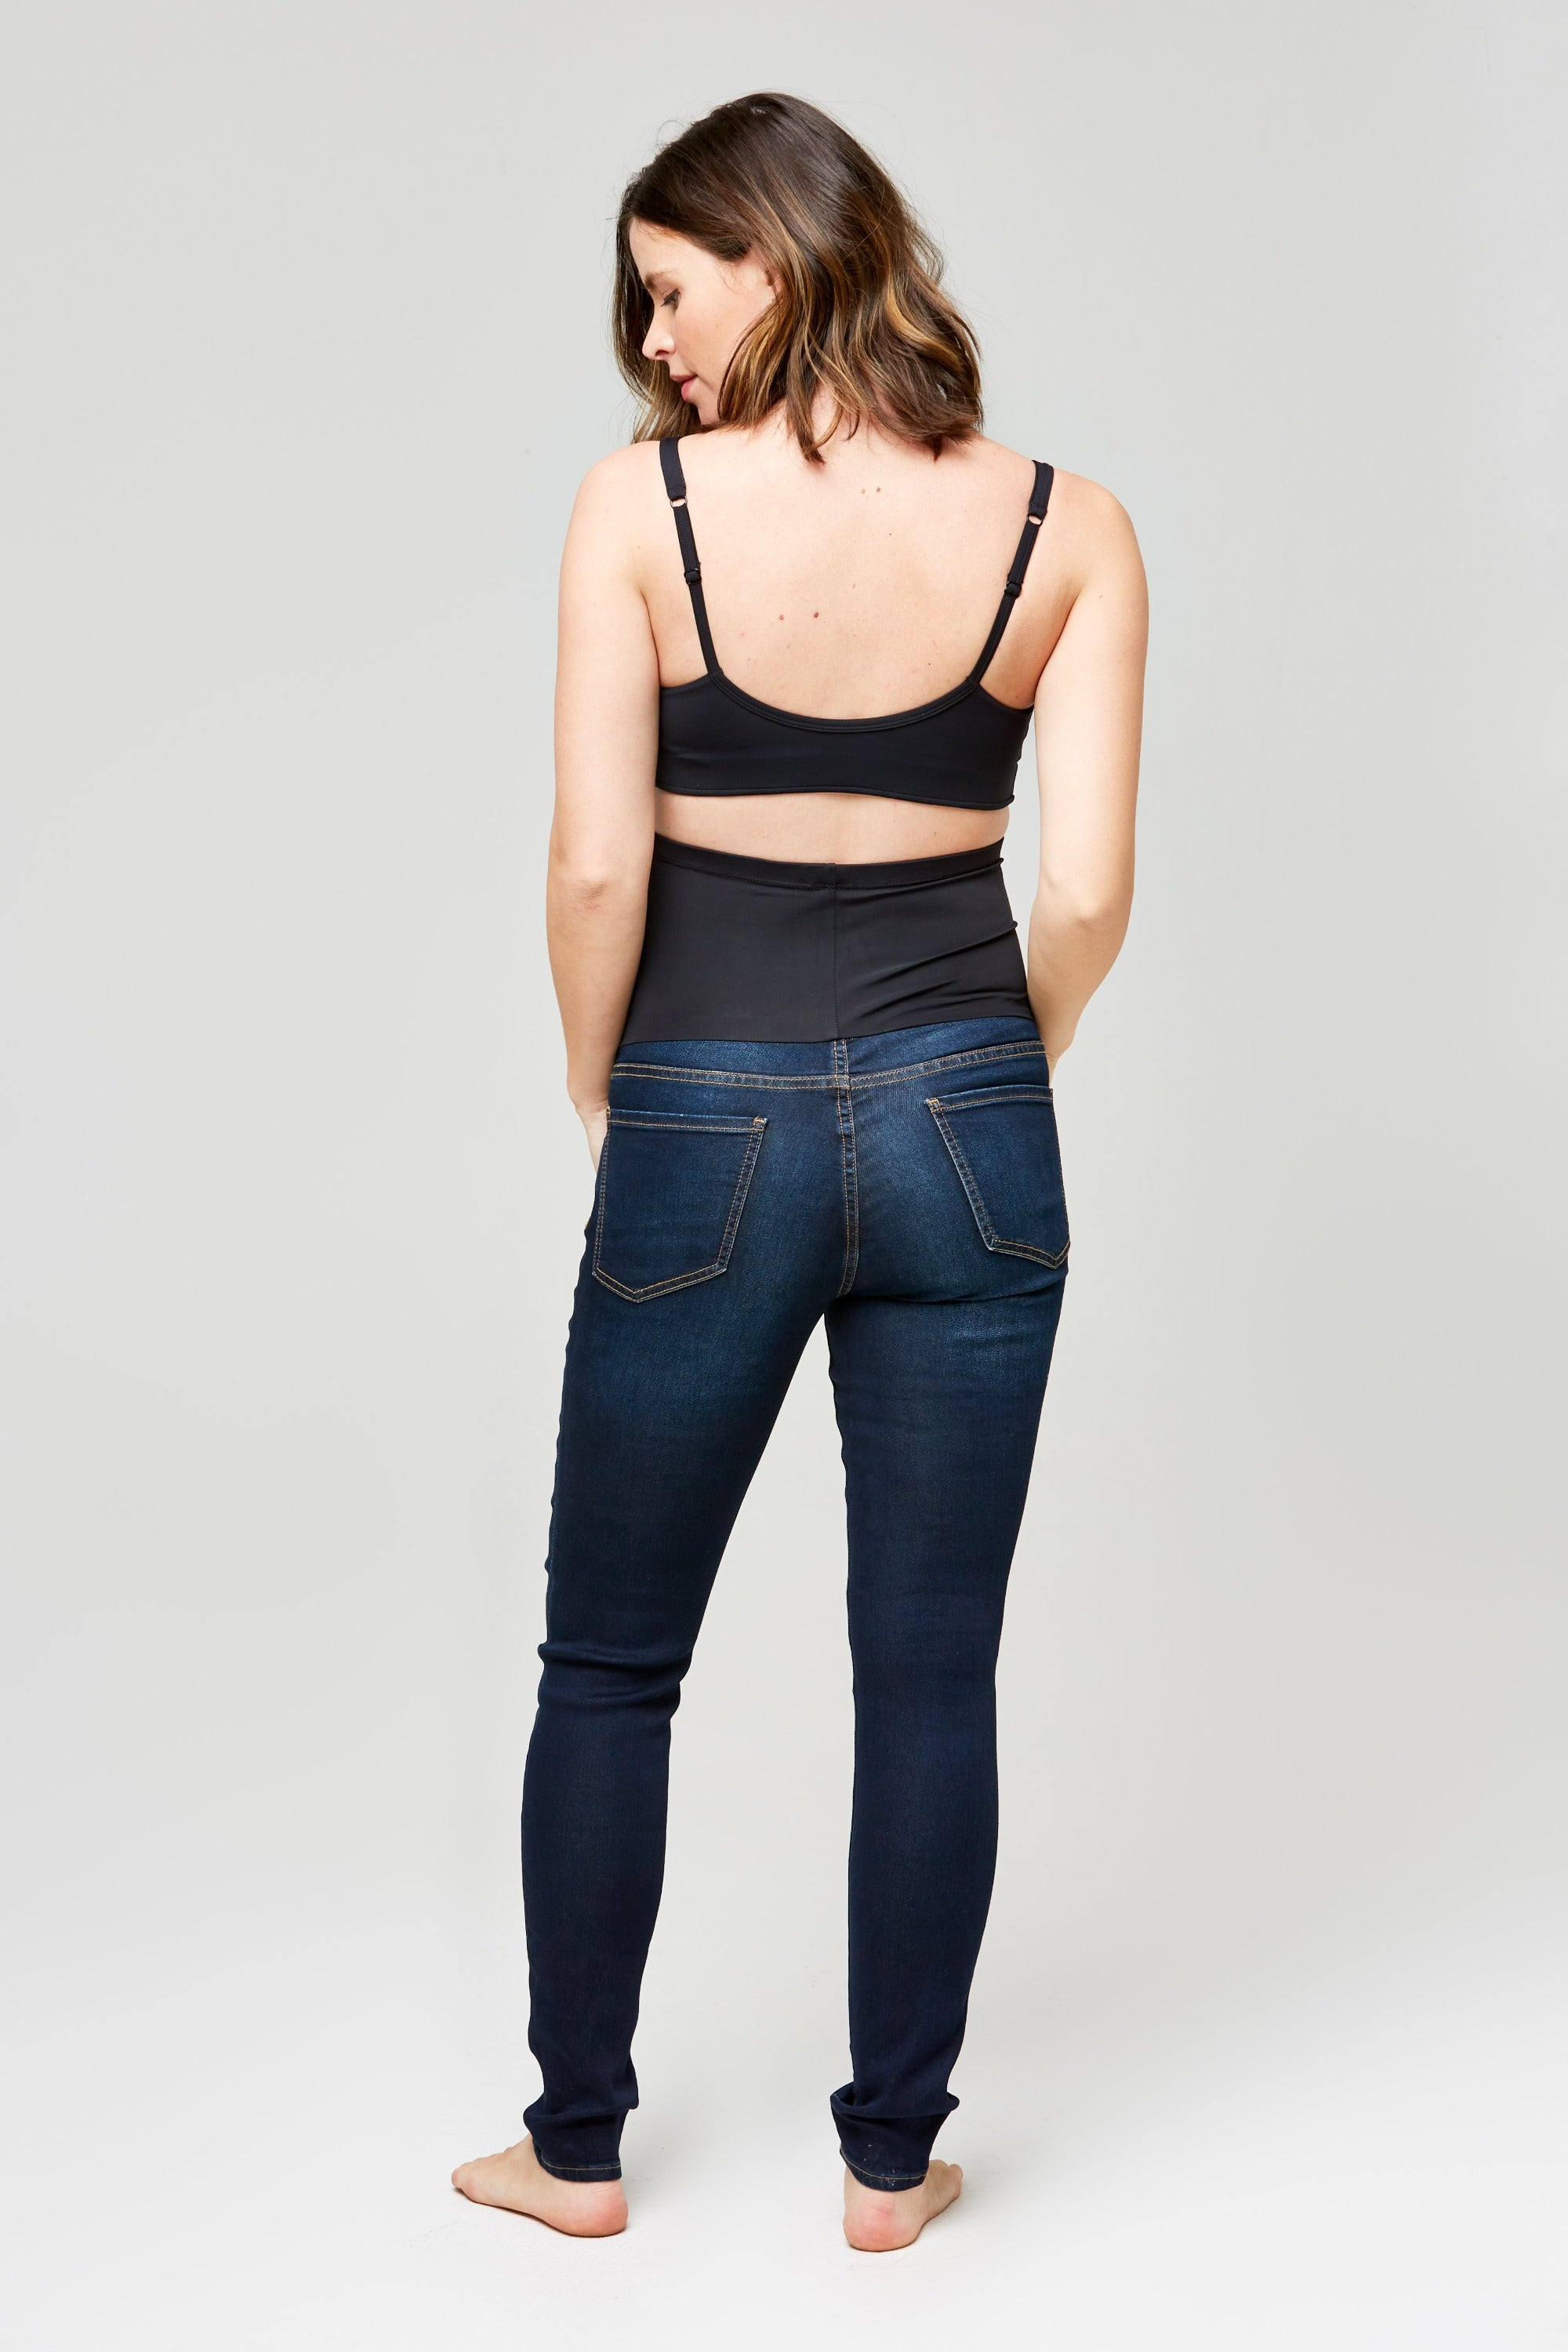 Soho maternity denim in dark wash